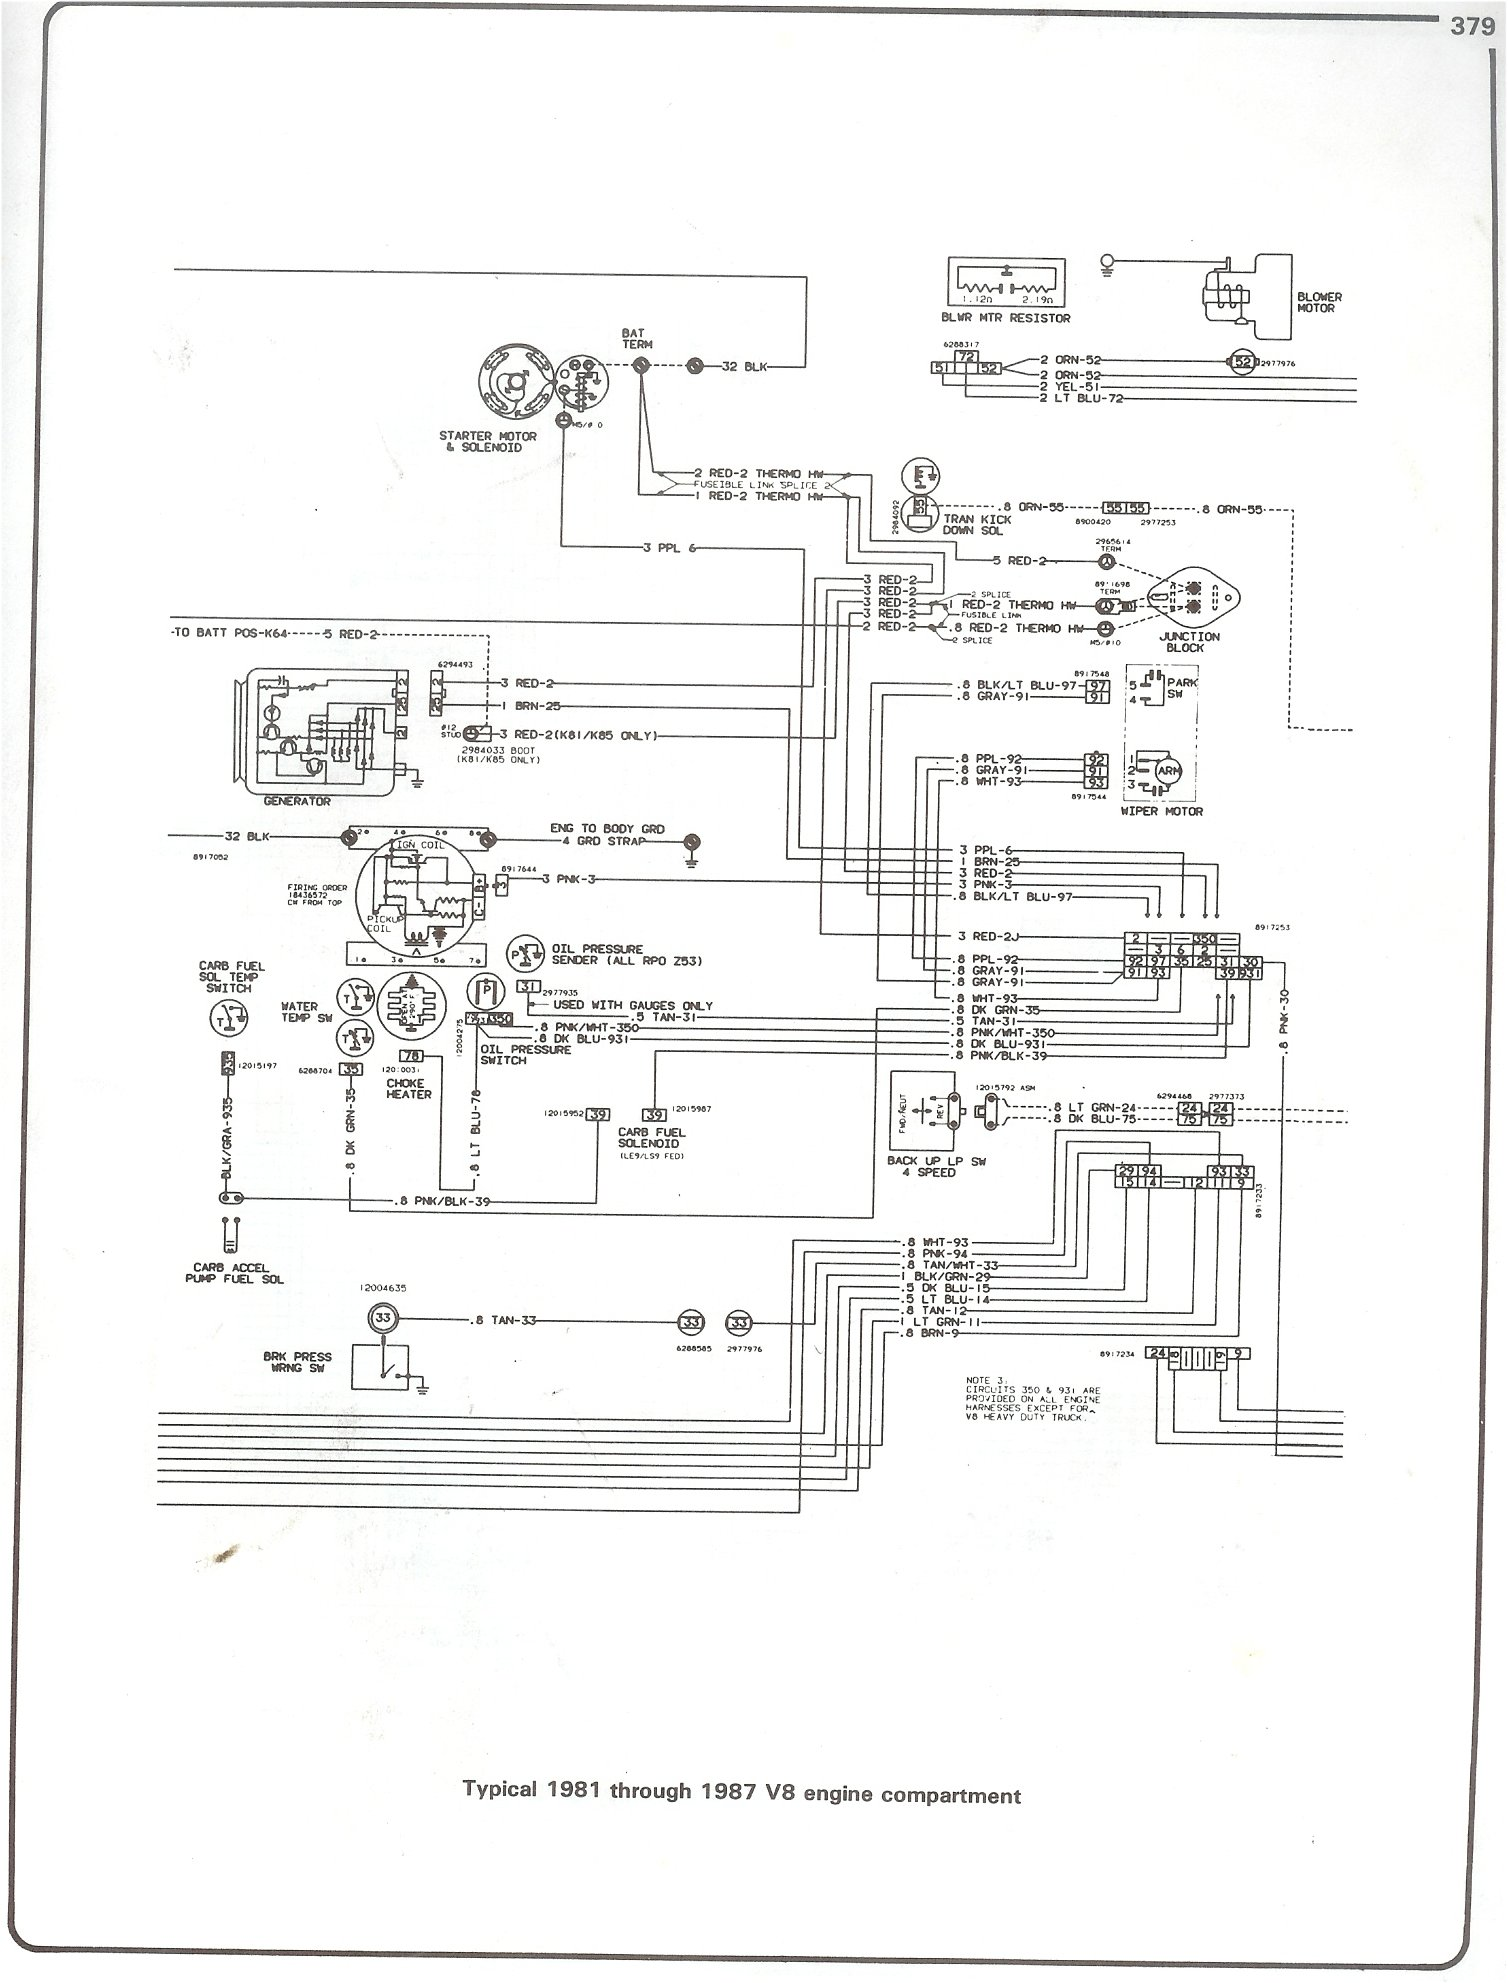 81 87_V8_engine complete 73 87 wiring diagrams 1984 chevy truck headlight wiring diagram at n-0.co